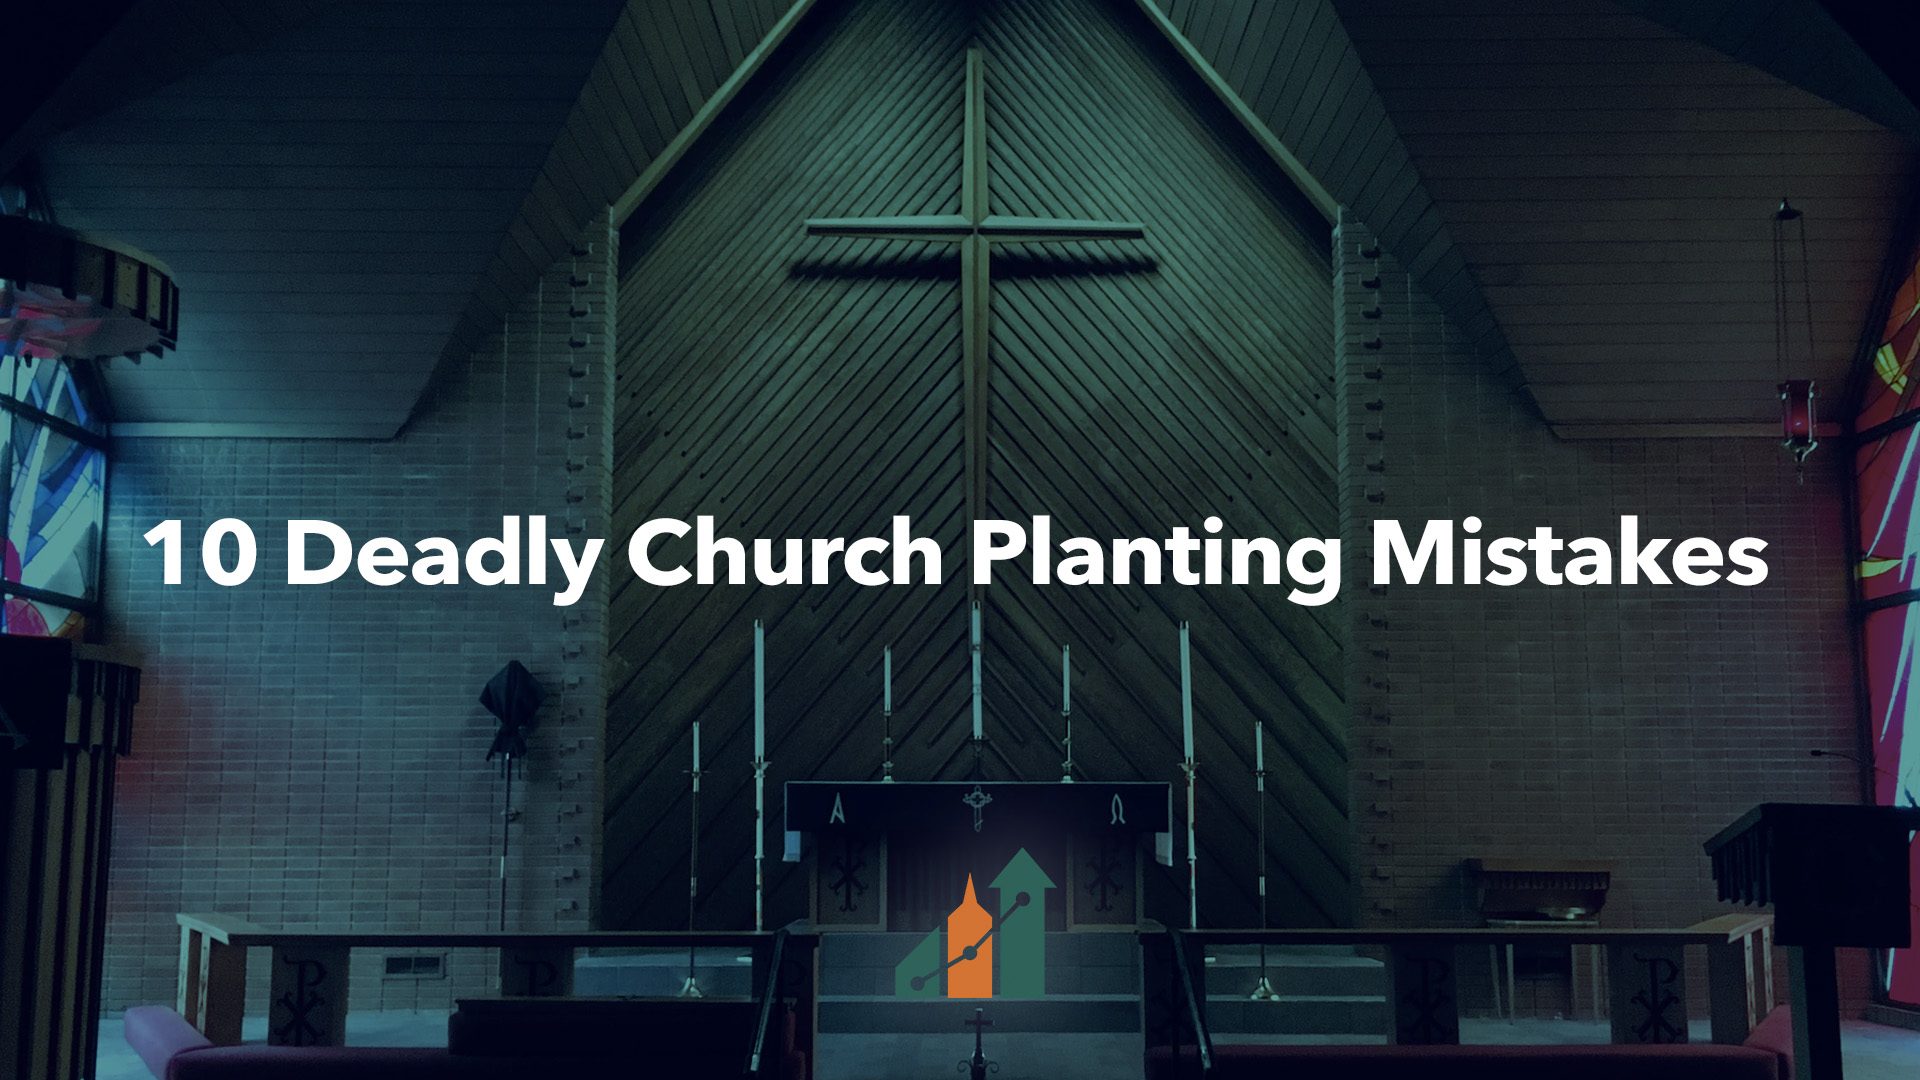 deadly-church-planting-mistakes